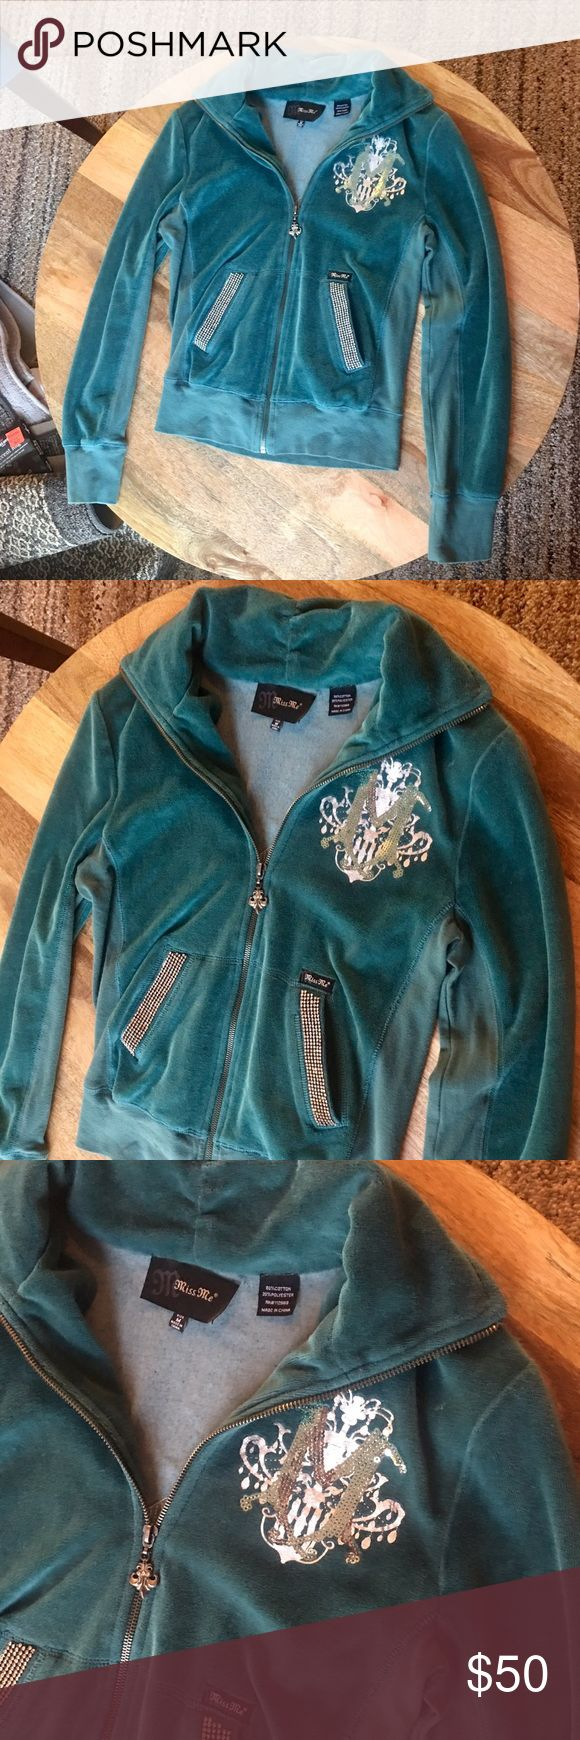 Miss Me Velour jacket Super cute track suit jacket!! Any questions please feel free to ask:) Juicy Couture Jackets & Coats